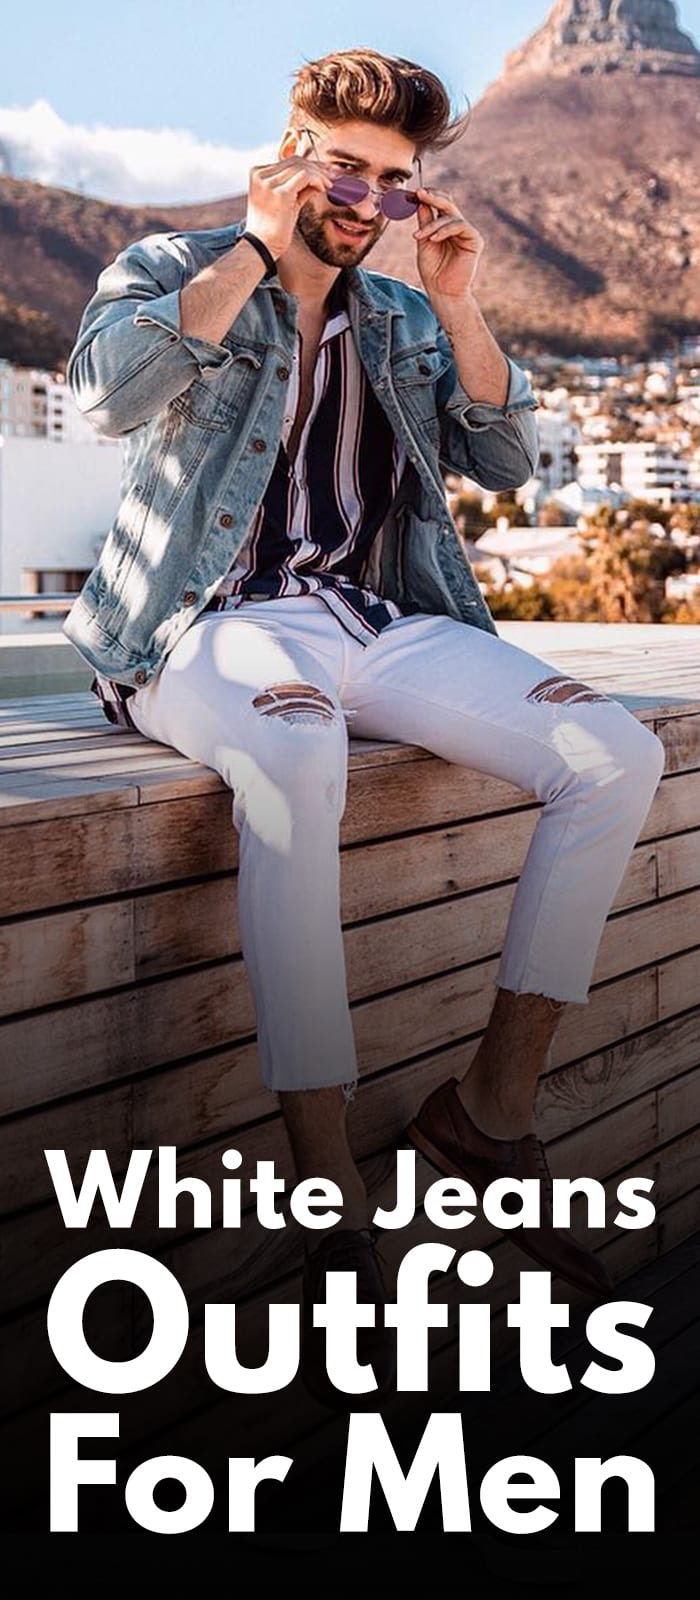 11 White Jeans Outfits To Master Smart Look